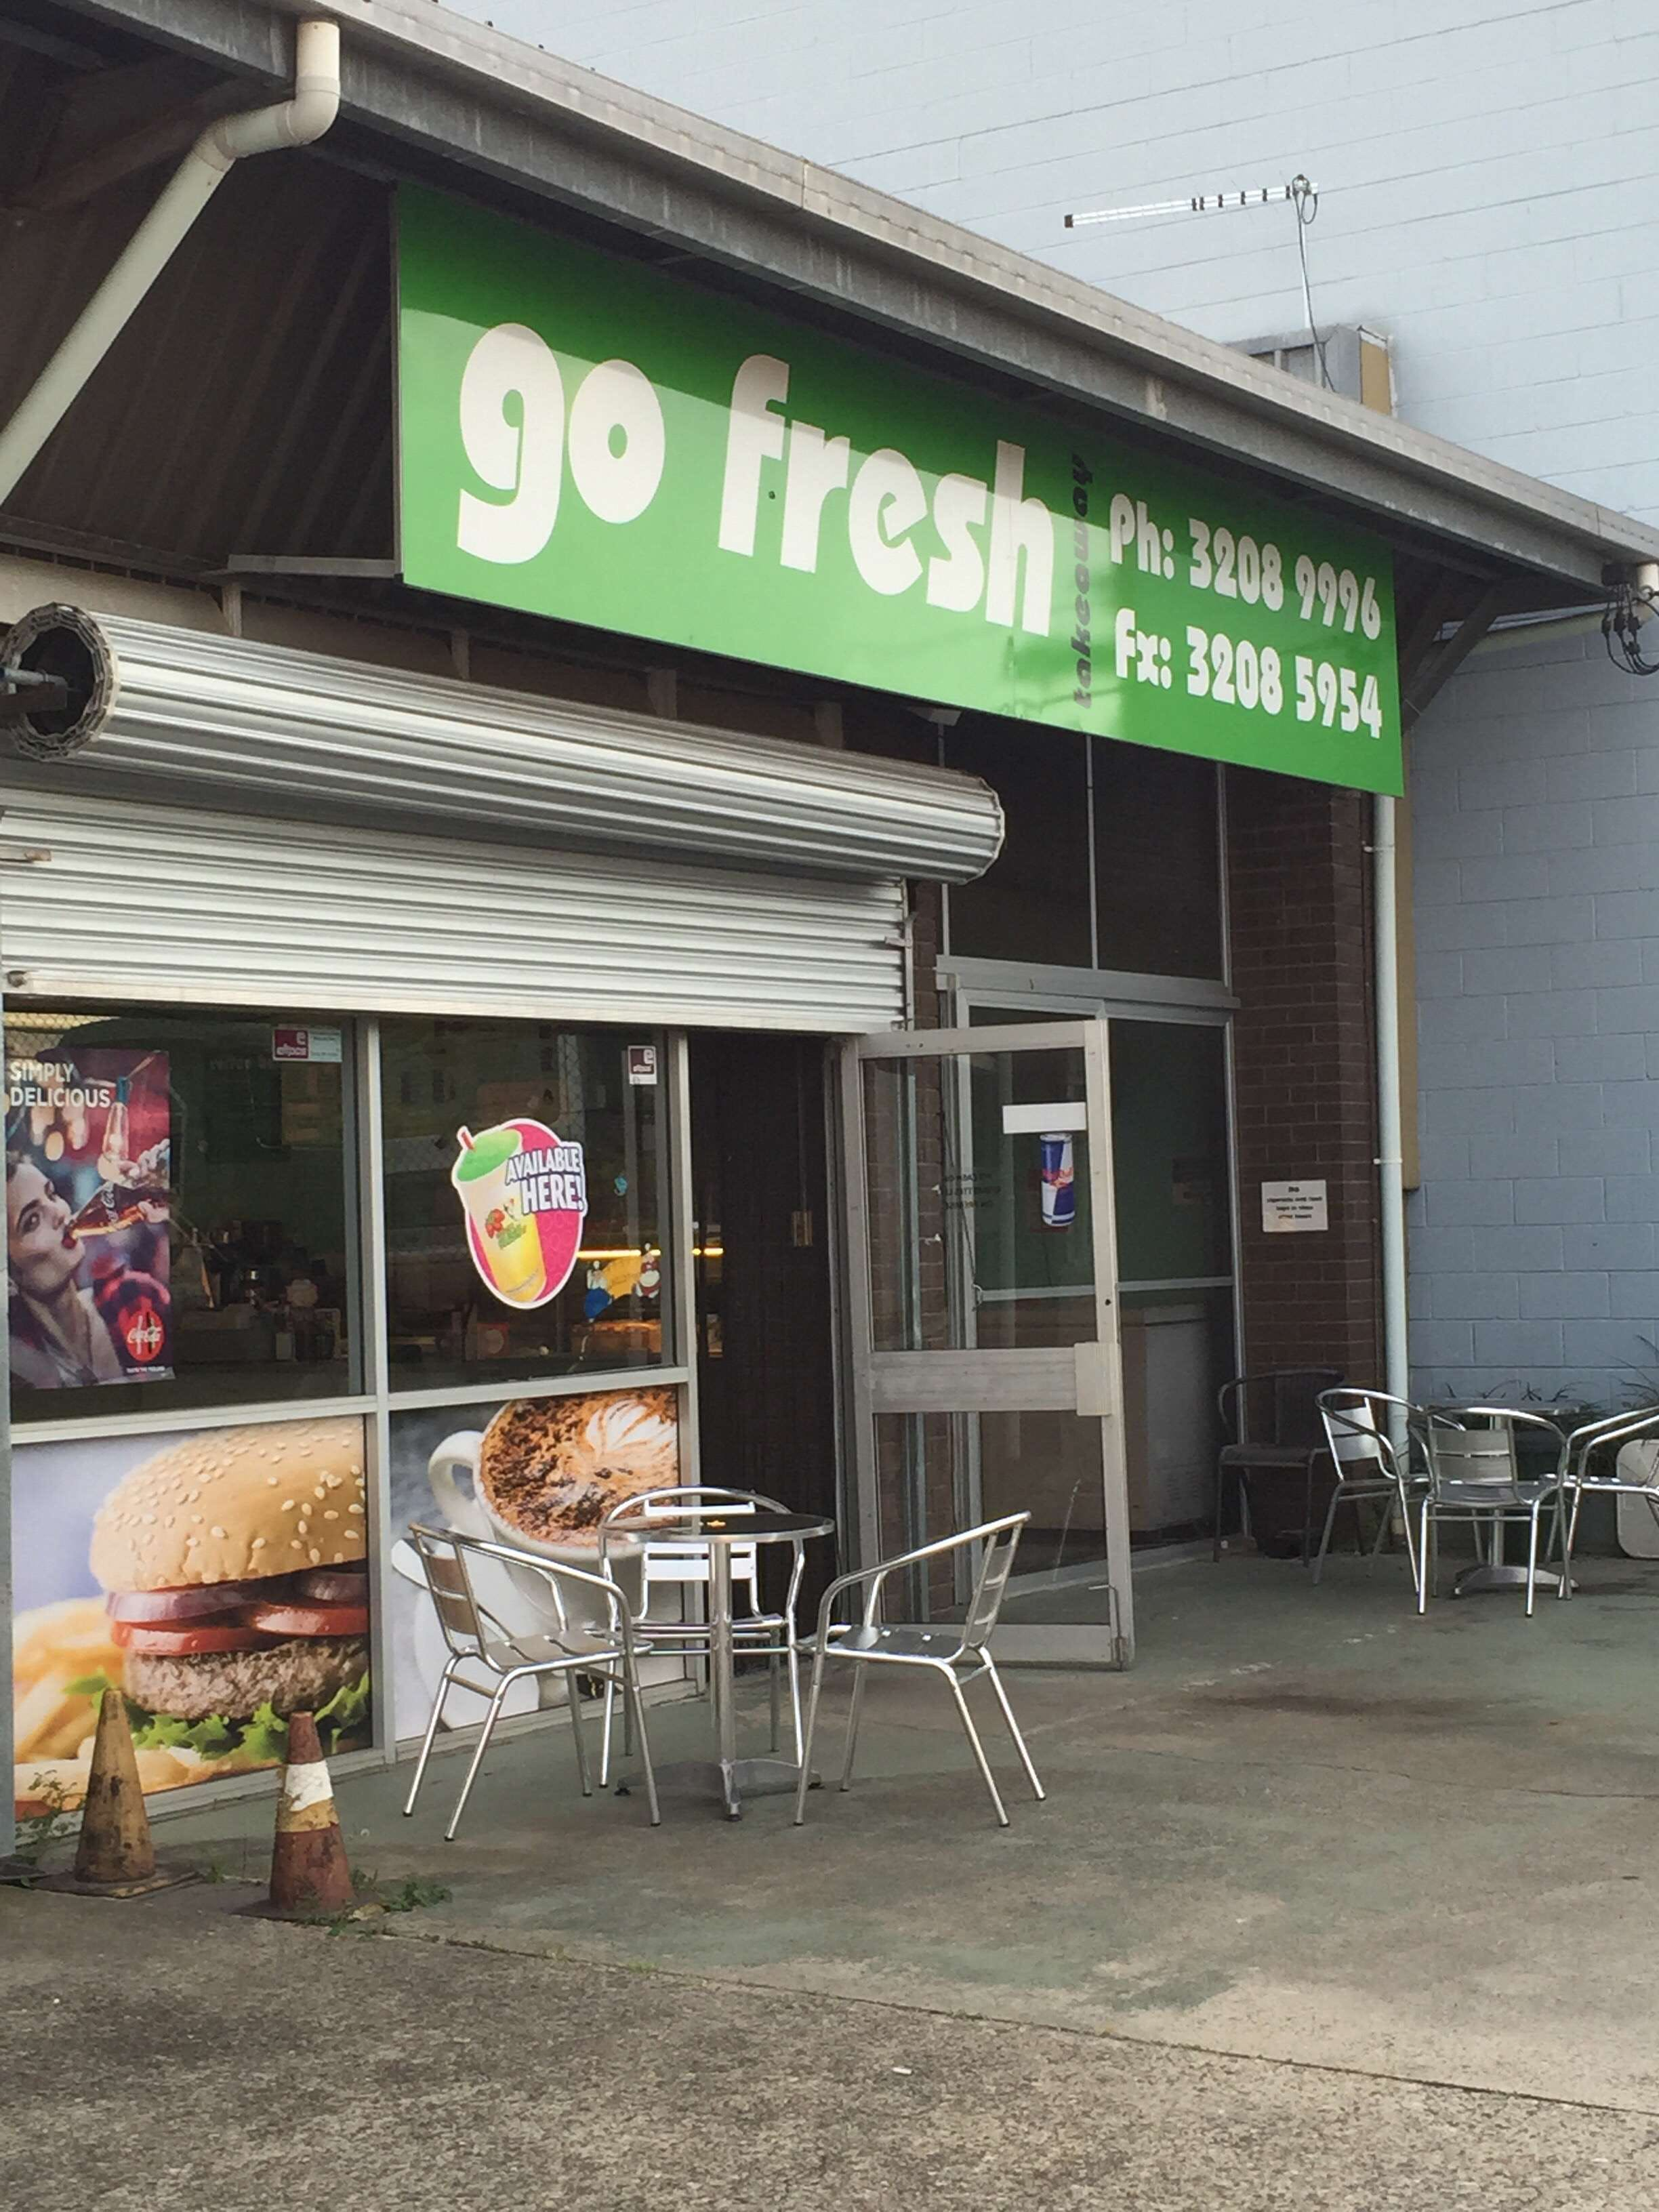 Go Fresh - Pubs Sydney